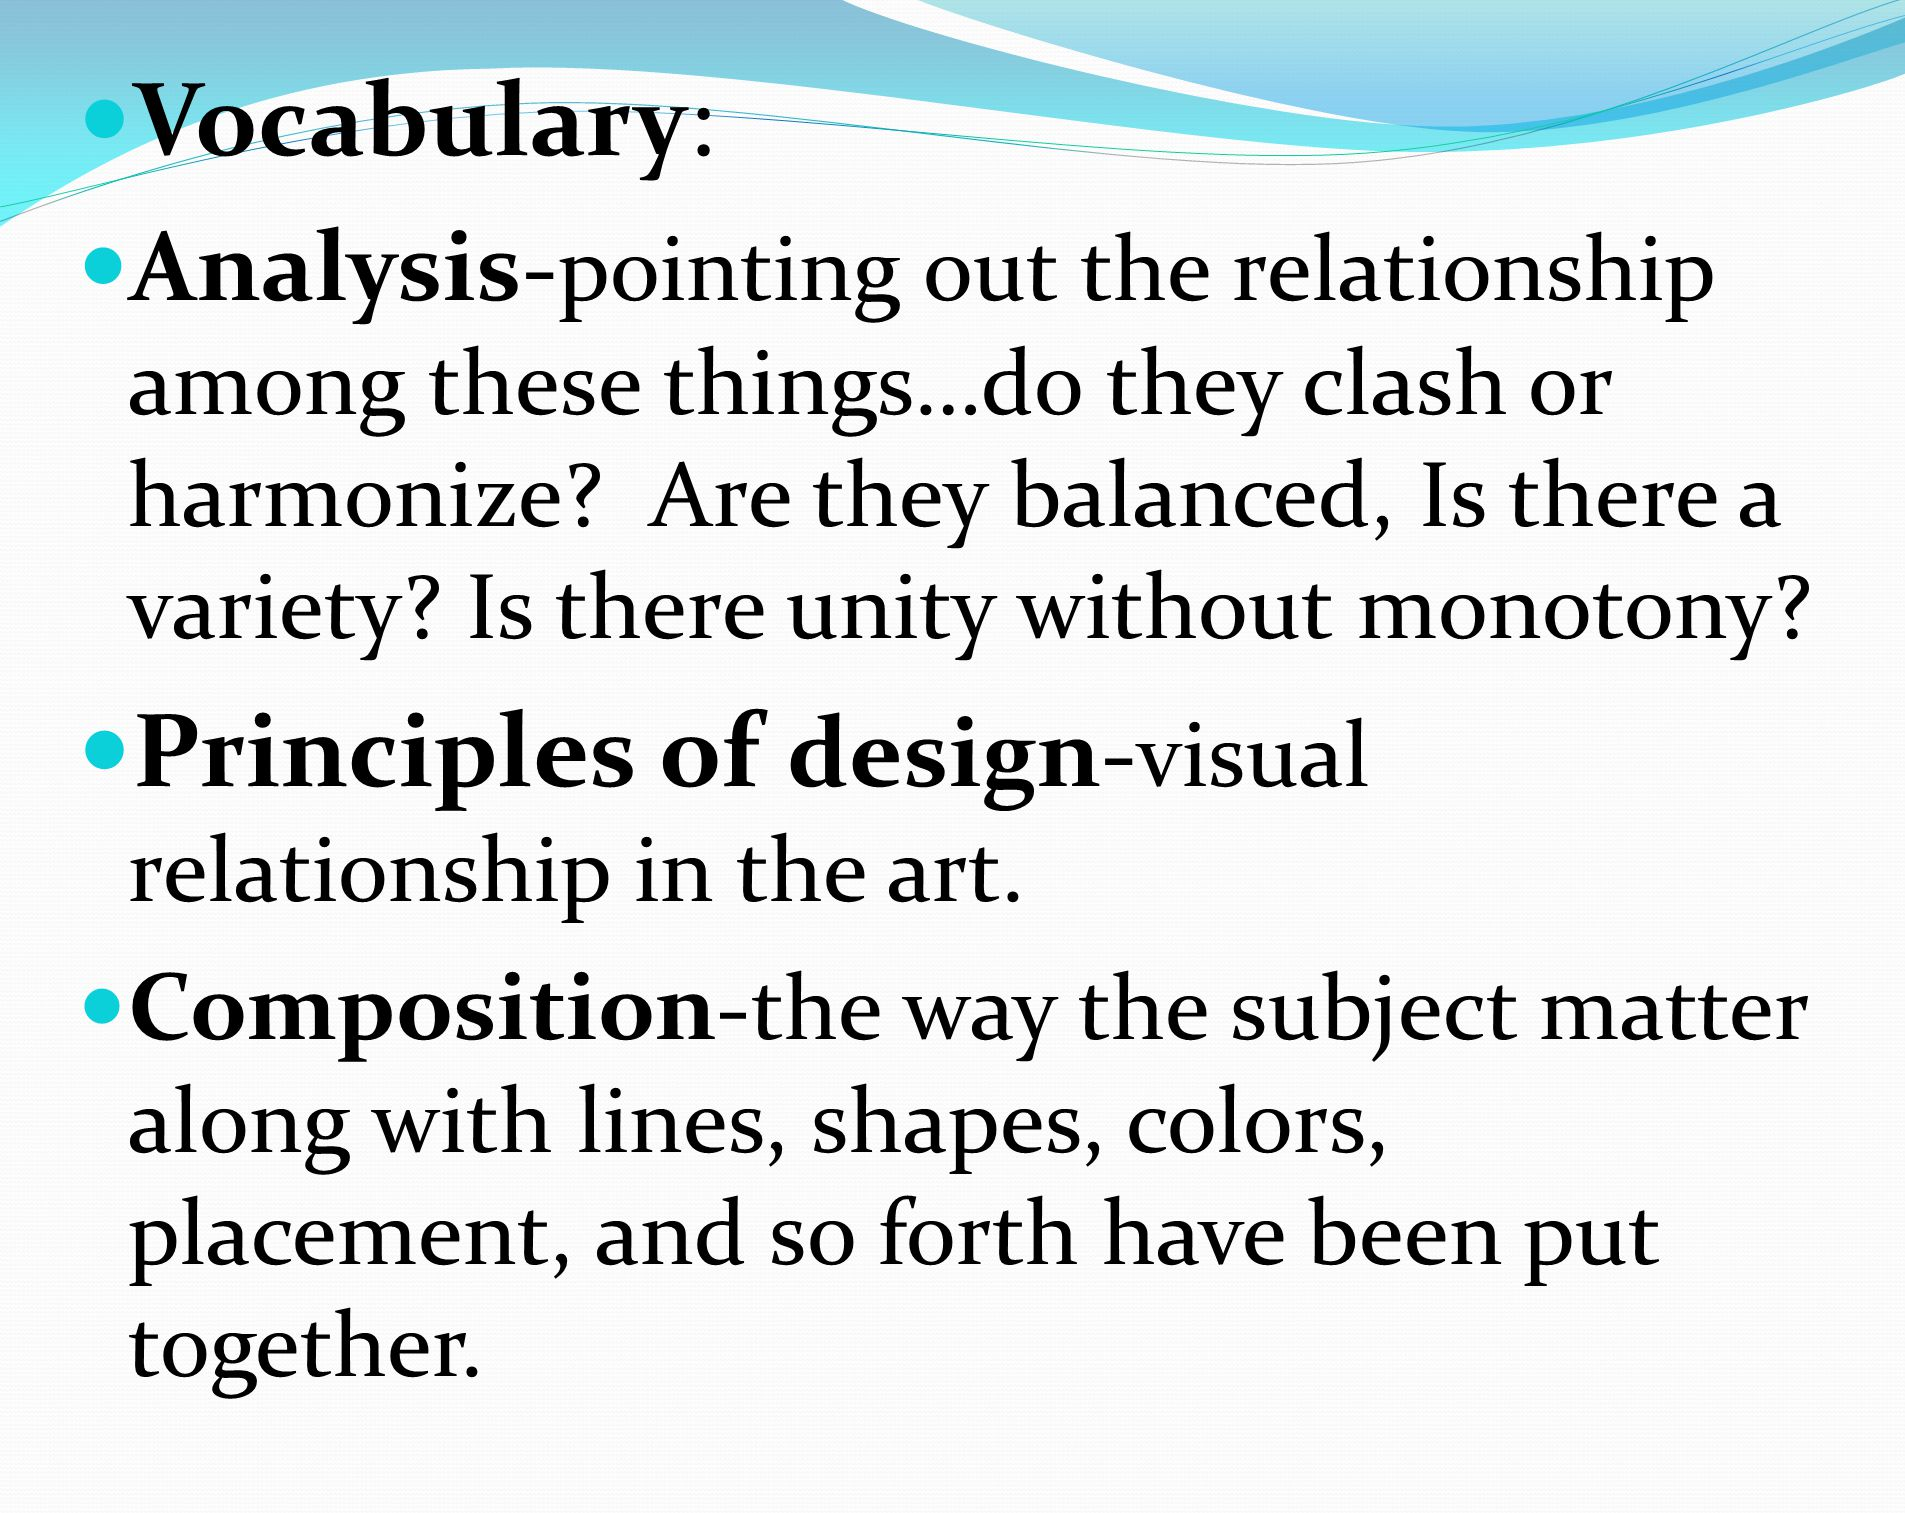 Principles of design-visual relationship in the art.